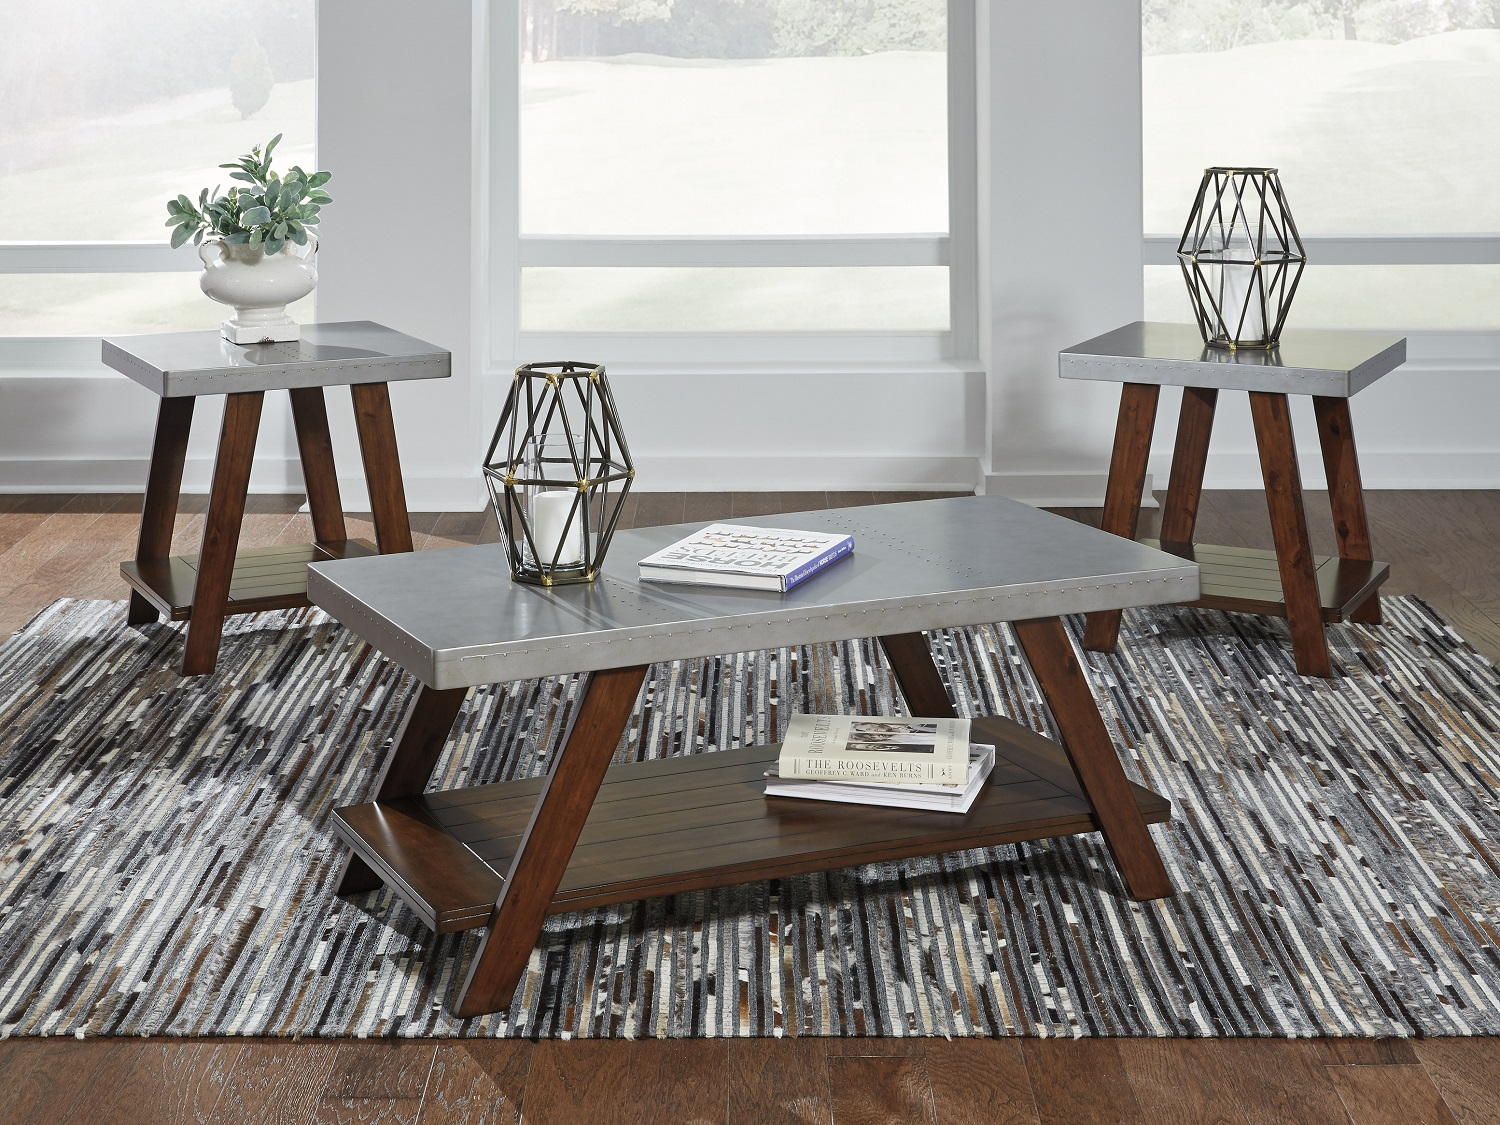 Bellenteen, T295-13, Coffee Table by Midha Furniture to Brampton, Mississauga, Etobicoke, Toronto, Scraborough, Caledon, Oakville, Markham, Ajax, Pickering, Oshawa, Richmondhill, Kitchener, Hamilton and GTA area